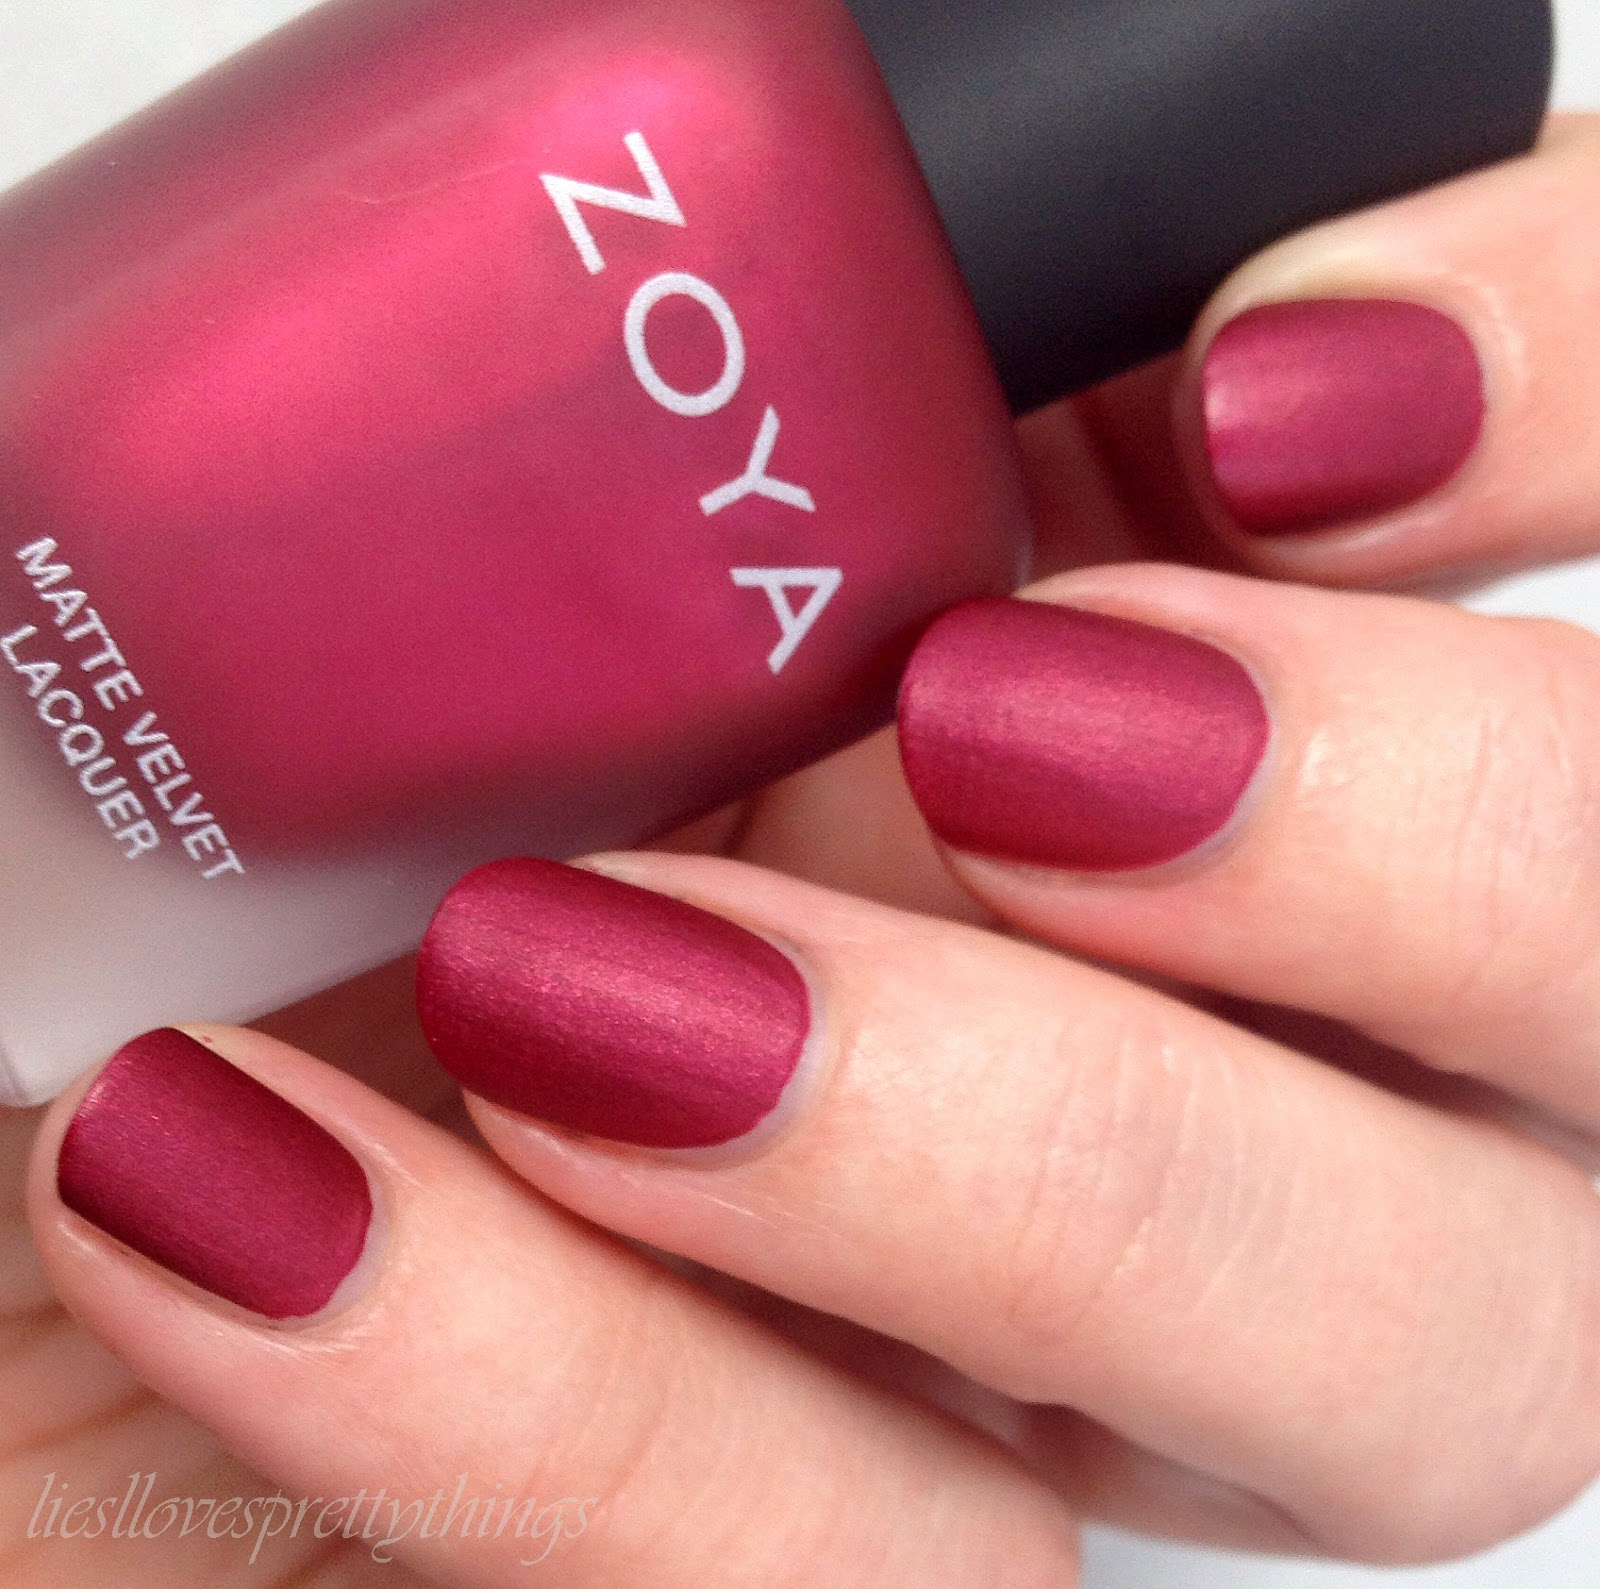 Zoya Posh, Matte Velvet Collection swatch and review